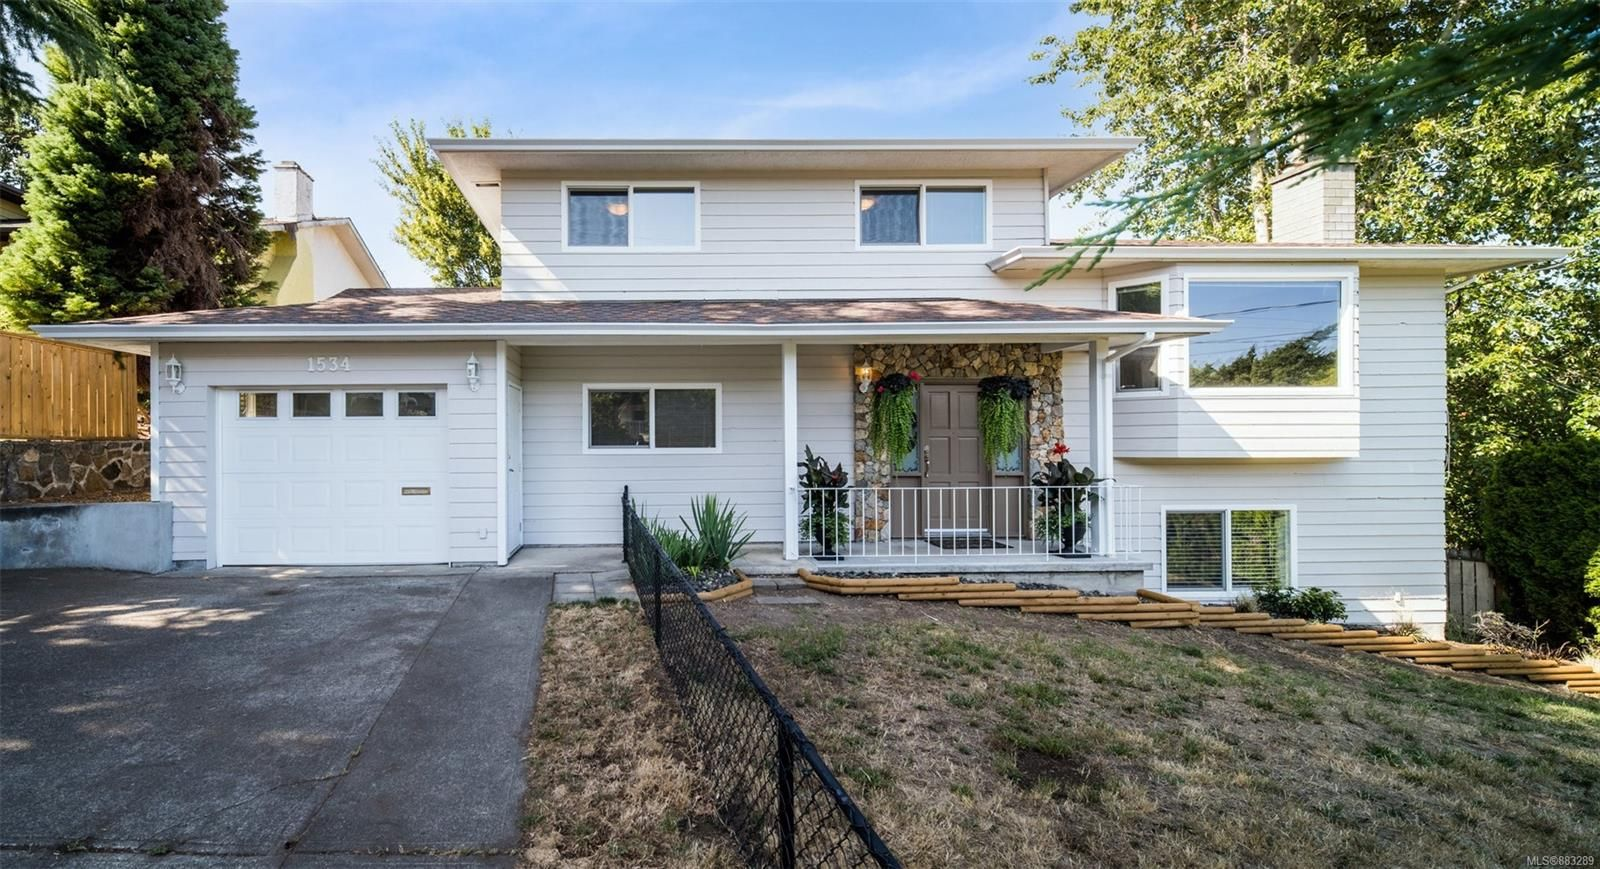 Main Photo: 1534 Kenmore Rd in : SE Mt Doug House for sale (Saanich East)  : MLS®# 883289